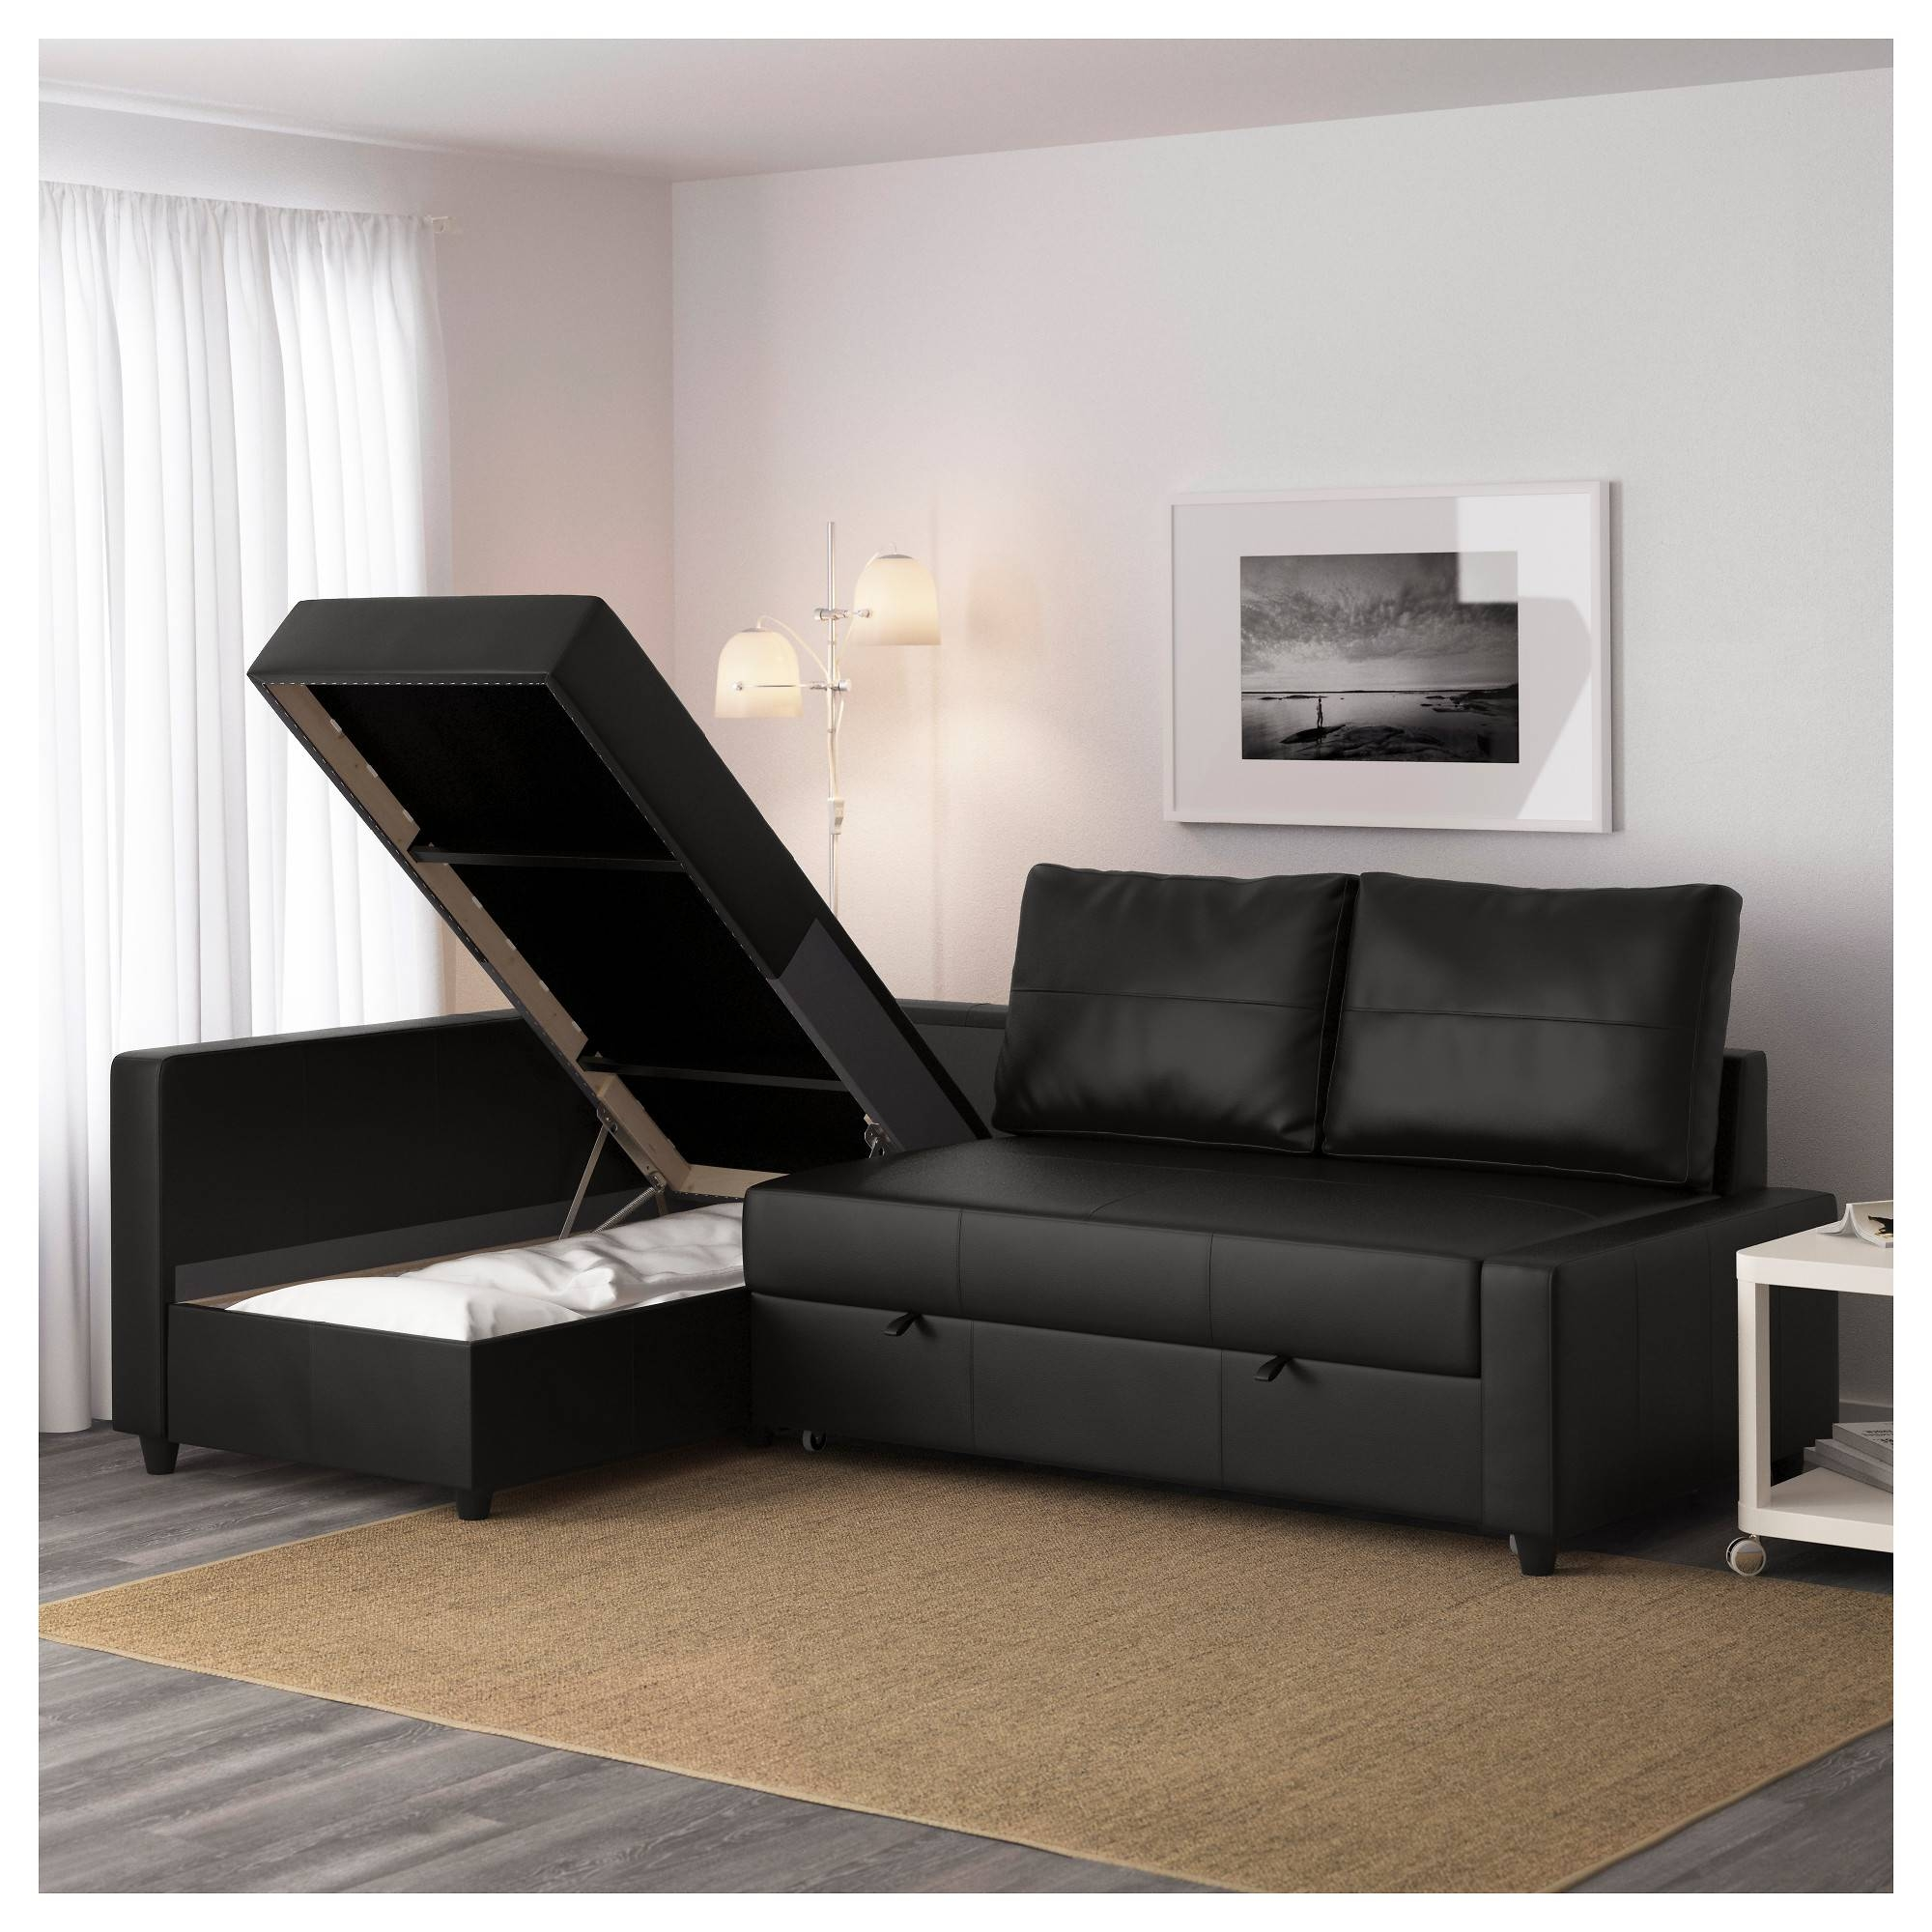 Friheten Sleeper Sectional,3 Seat W/storage - Skiftebo Dark Gray regarding Ikea Sectional Sofa Sleeper (Image 4 of 25)